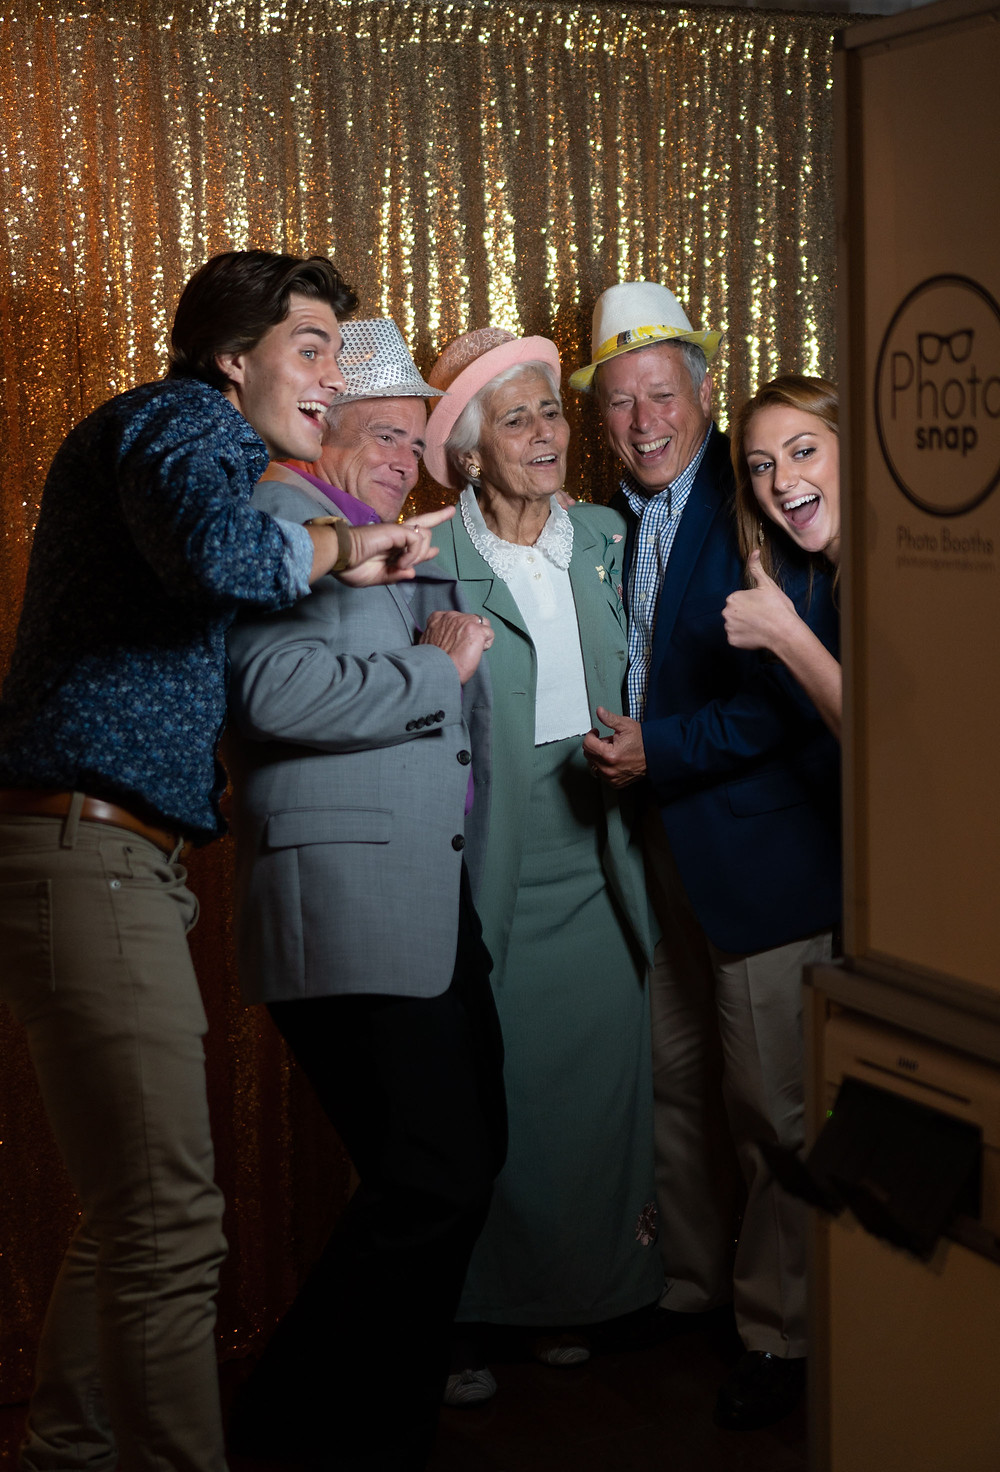 Elders and young millennial's in PhotoSnap Photo Booth